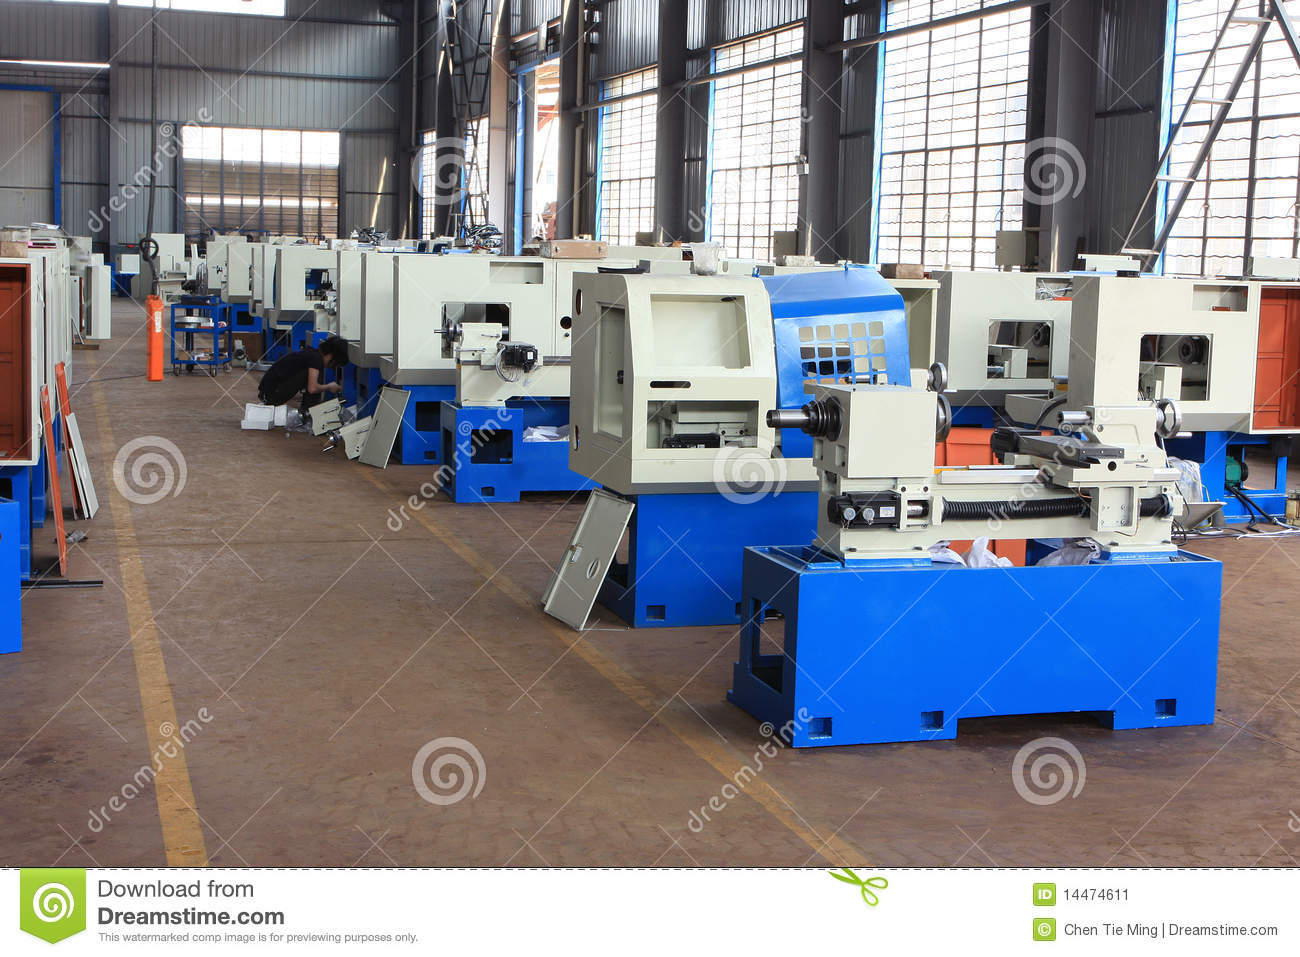 Machine tool factory product assembly workshop